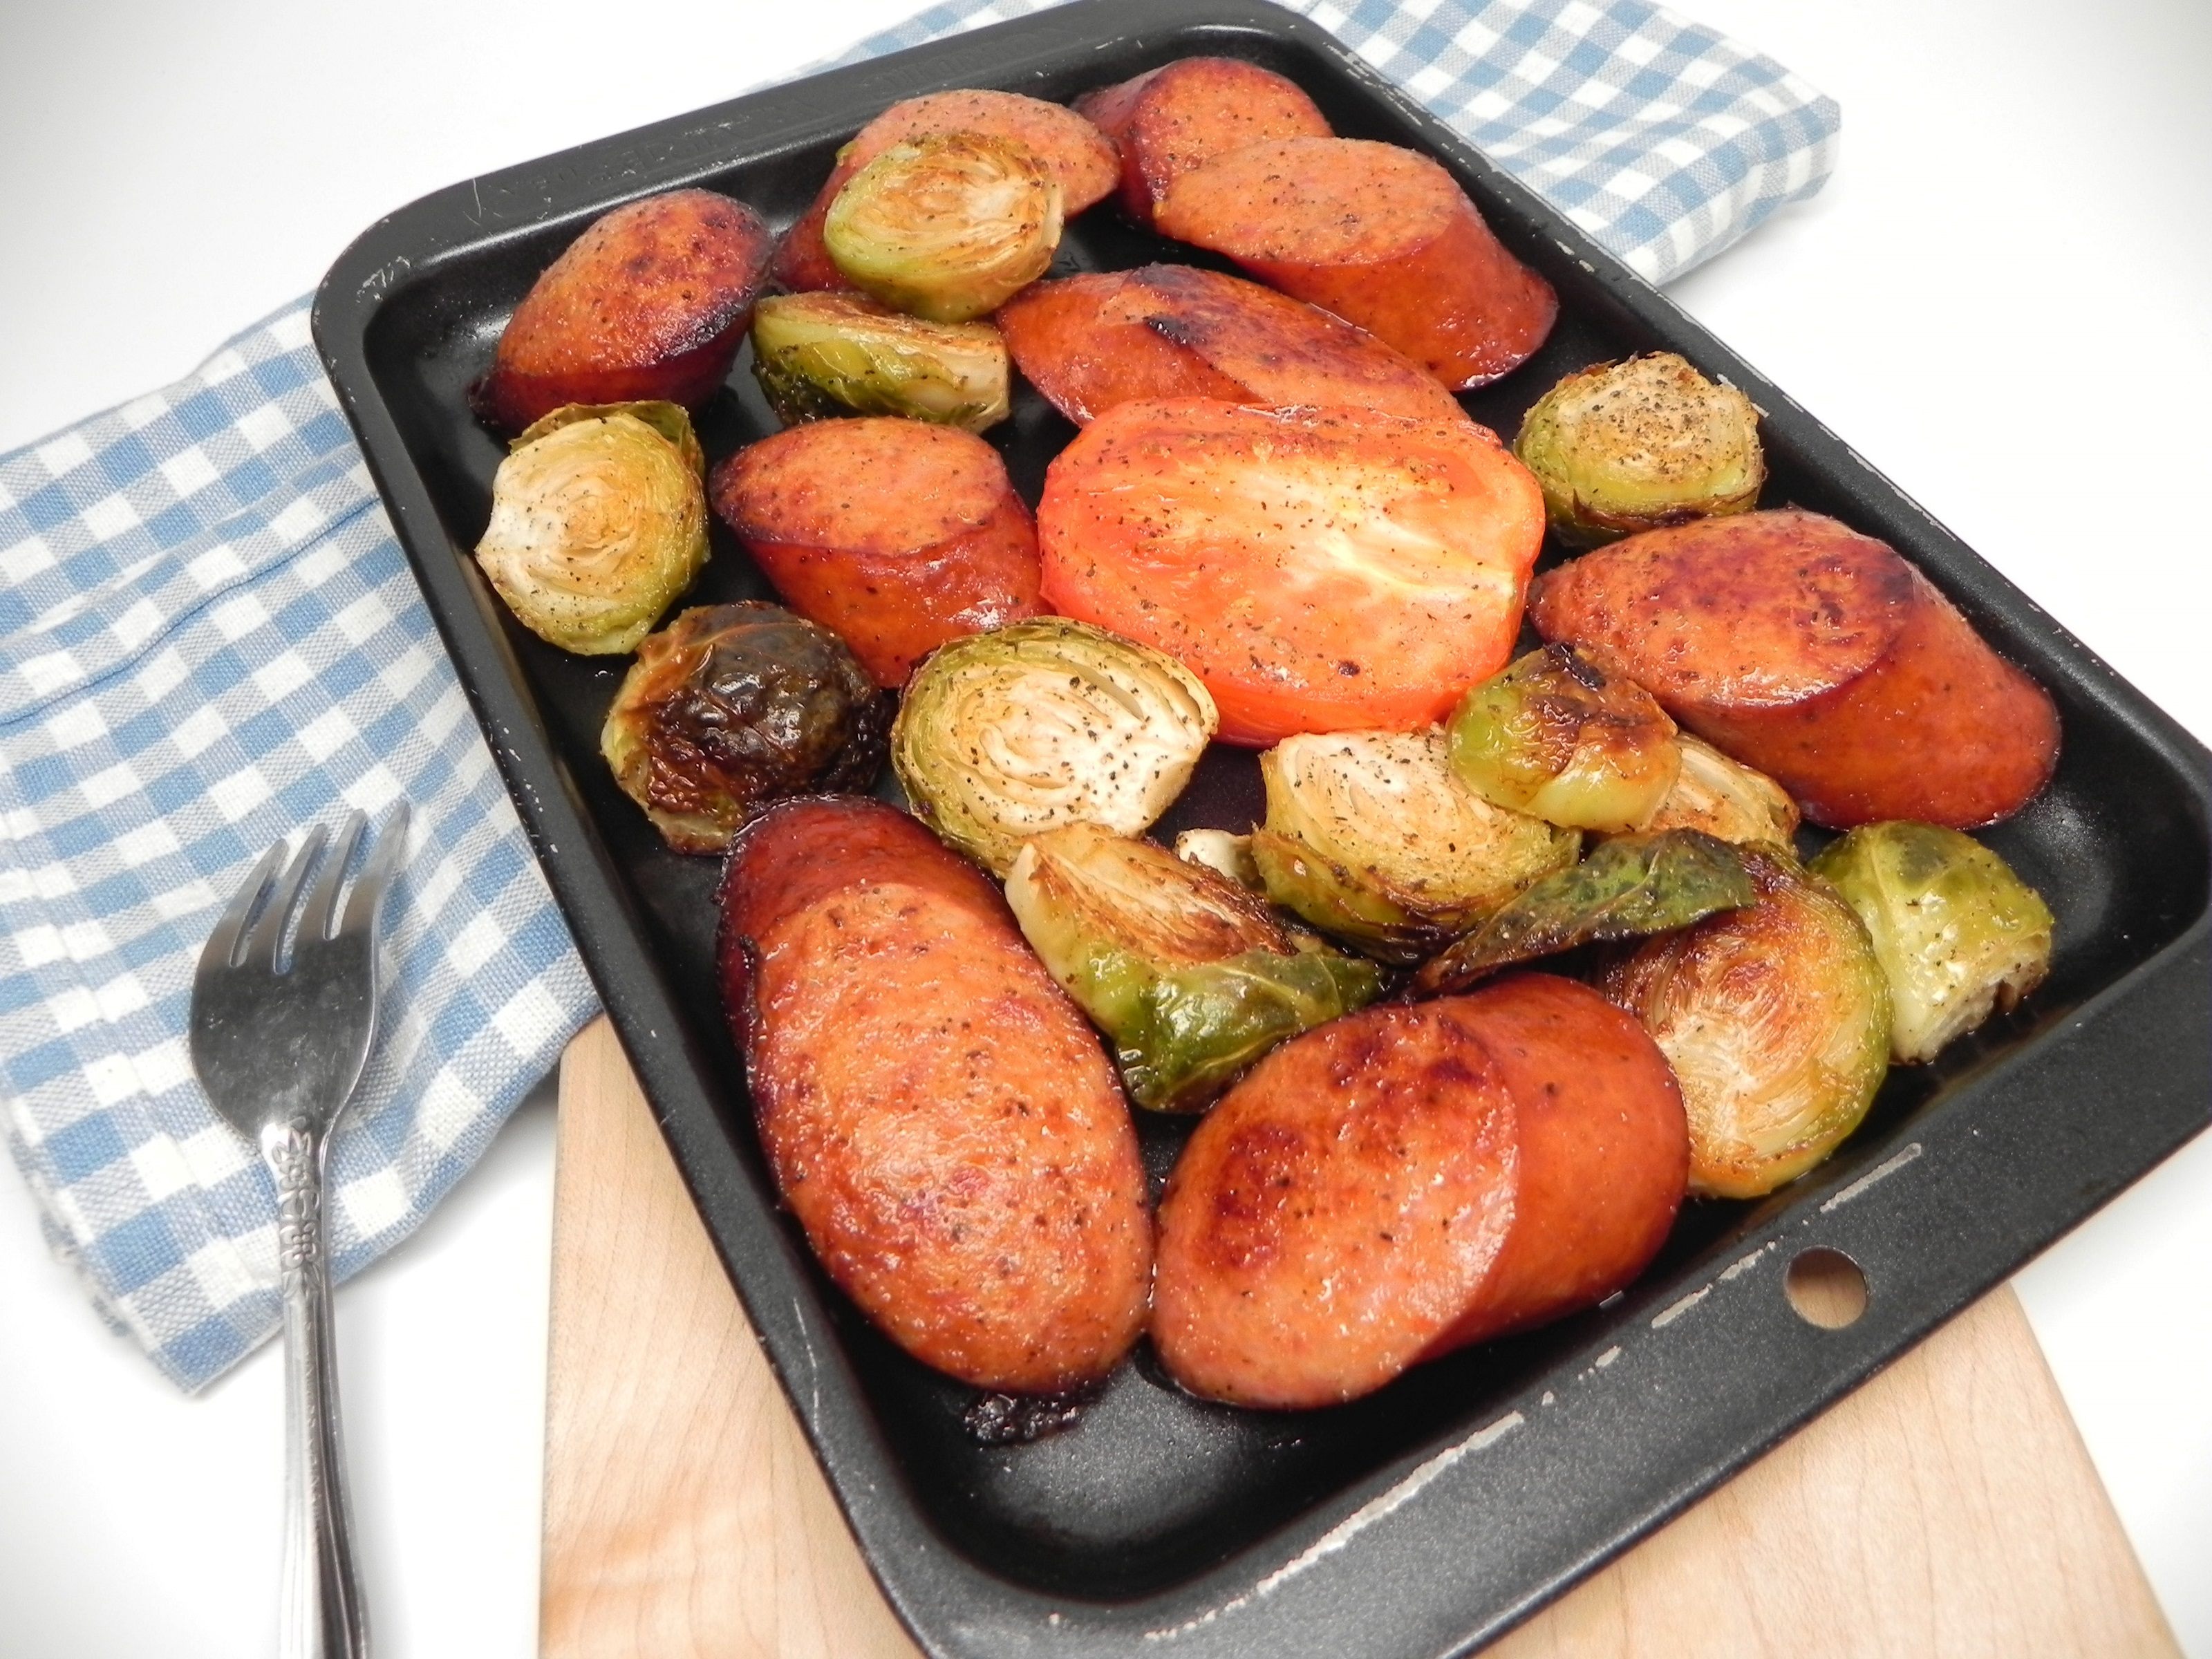 Sheet Pan Keto Chicken Sausage with Roasted Brussels Sprouts and Tomatoes